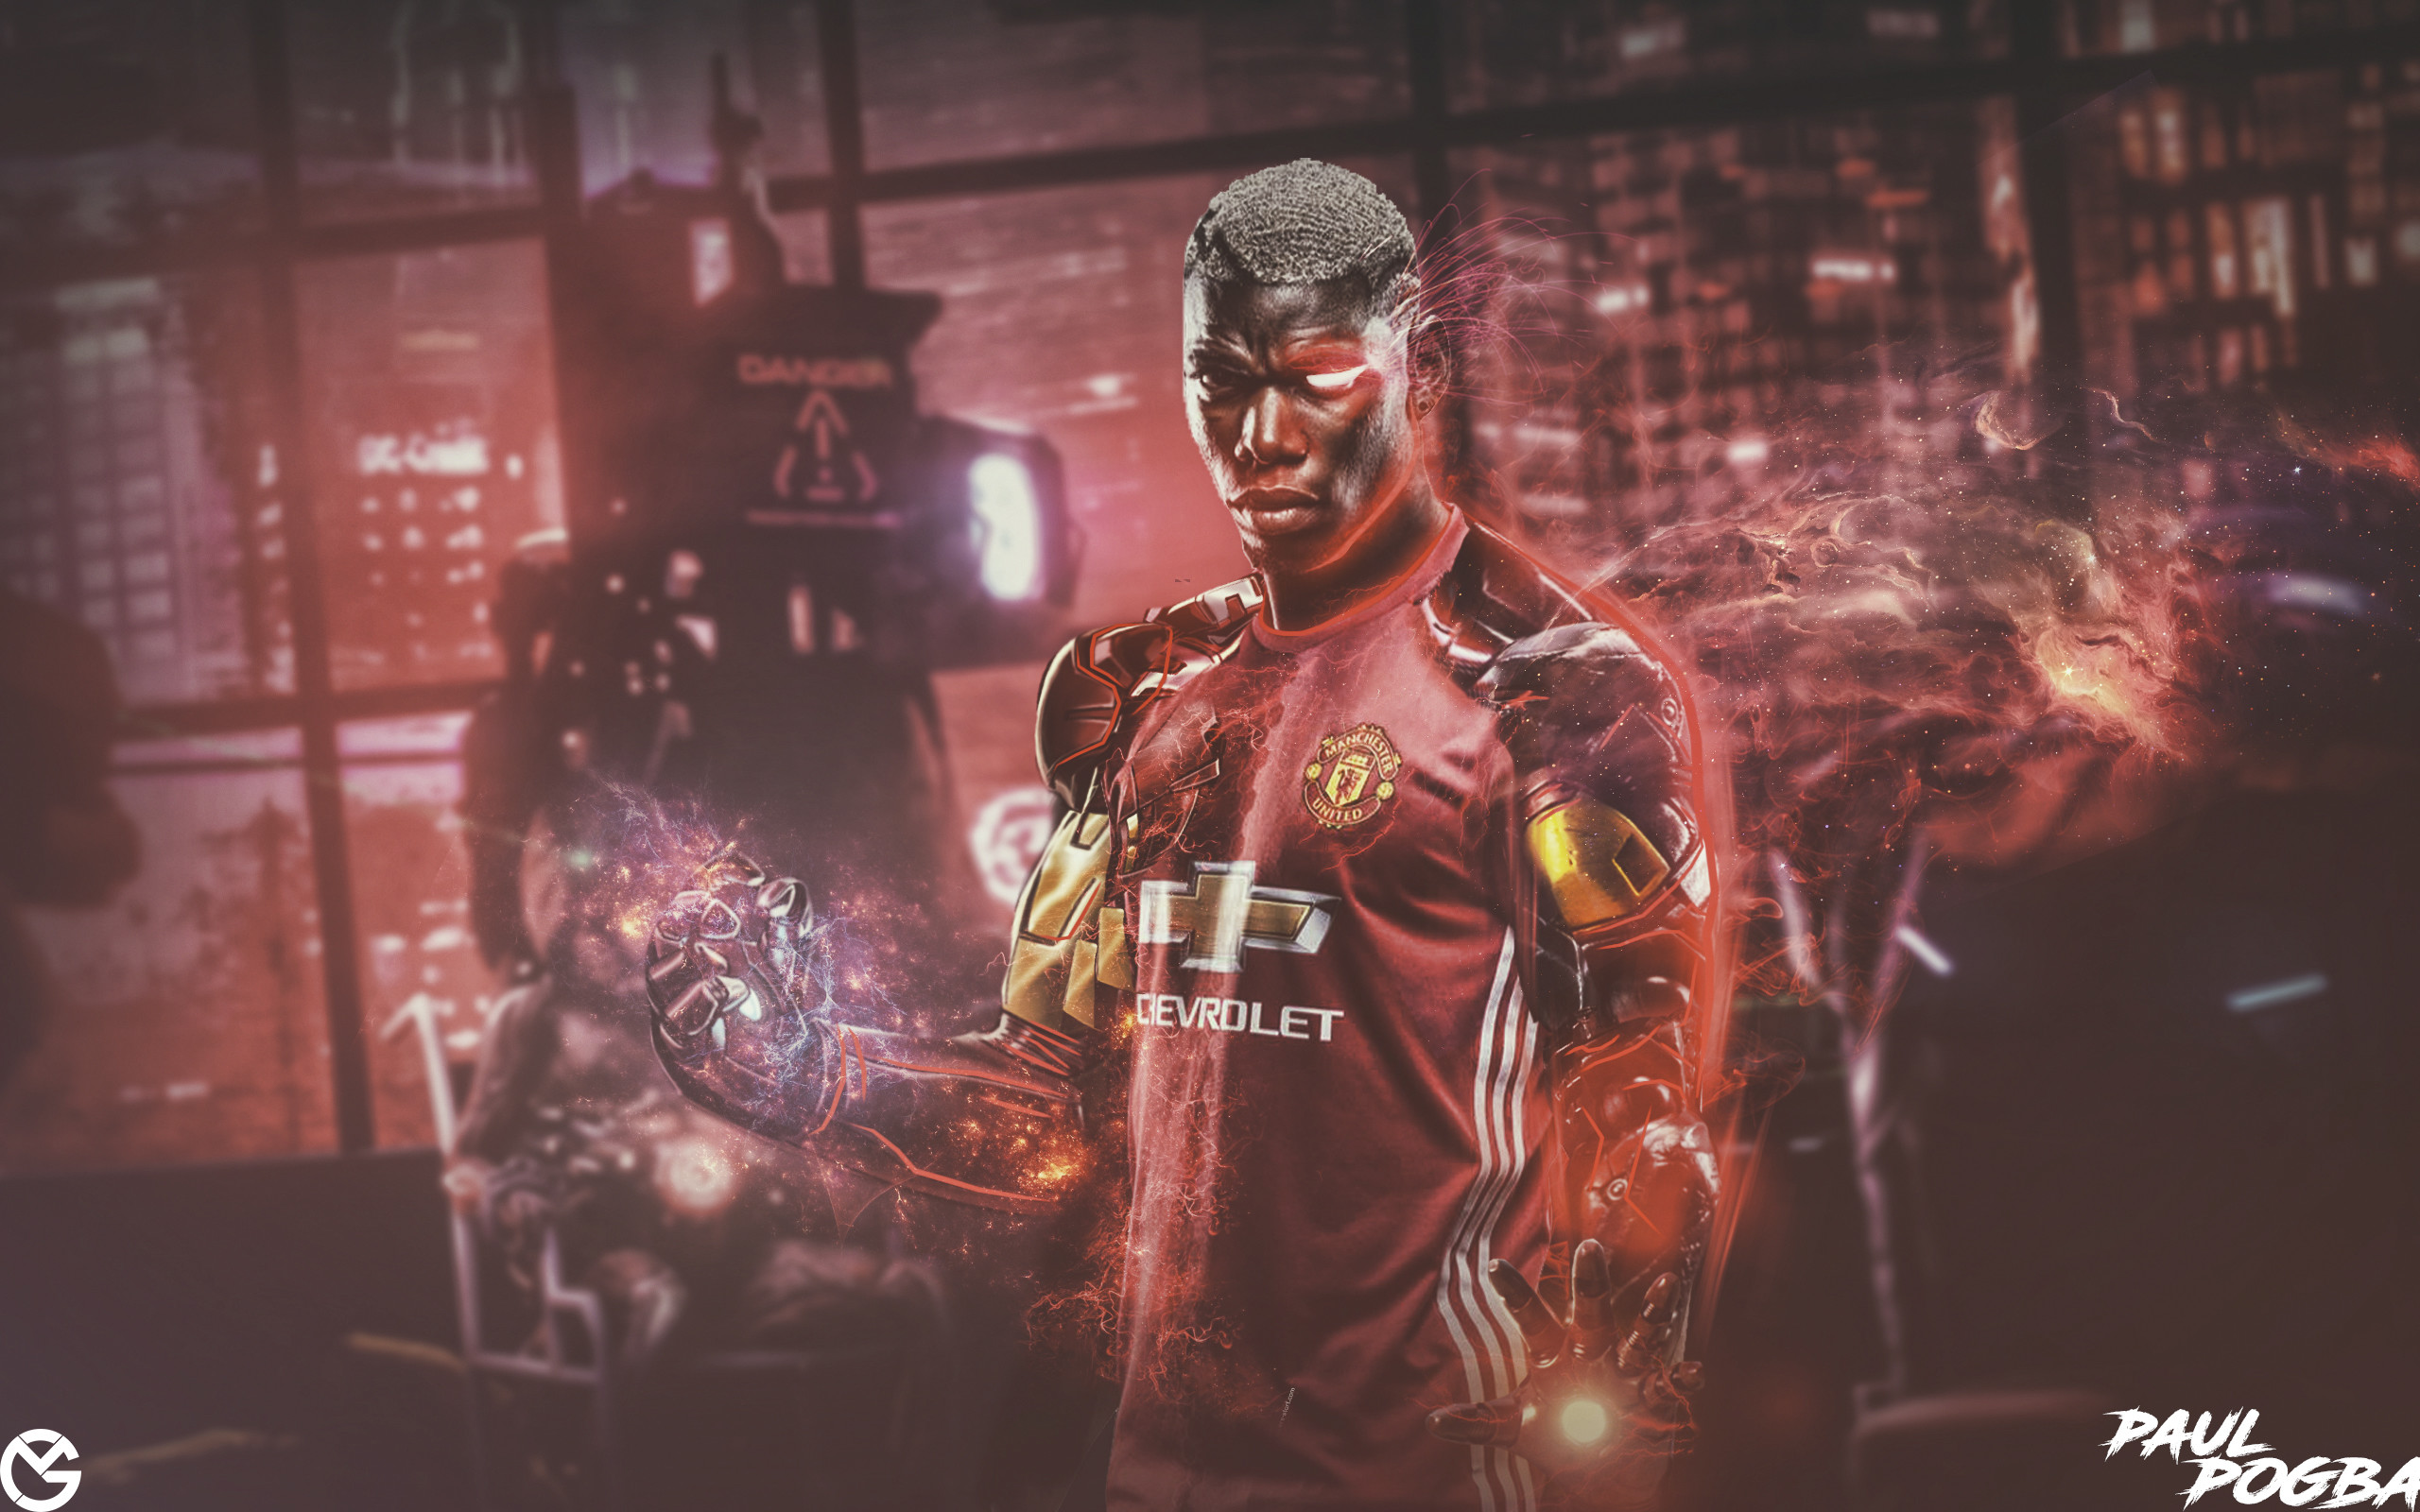 Res: 2560x1600, Paul Pogba Wallpaper by GraphicalManiacs Paul Pogba Wallpaper by  GraphicalManiacs